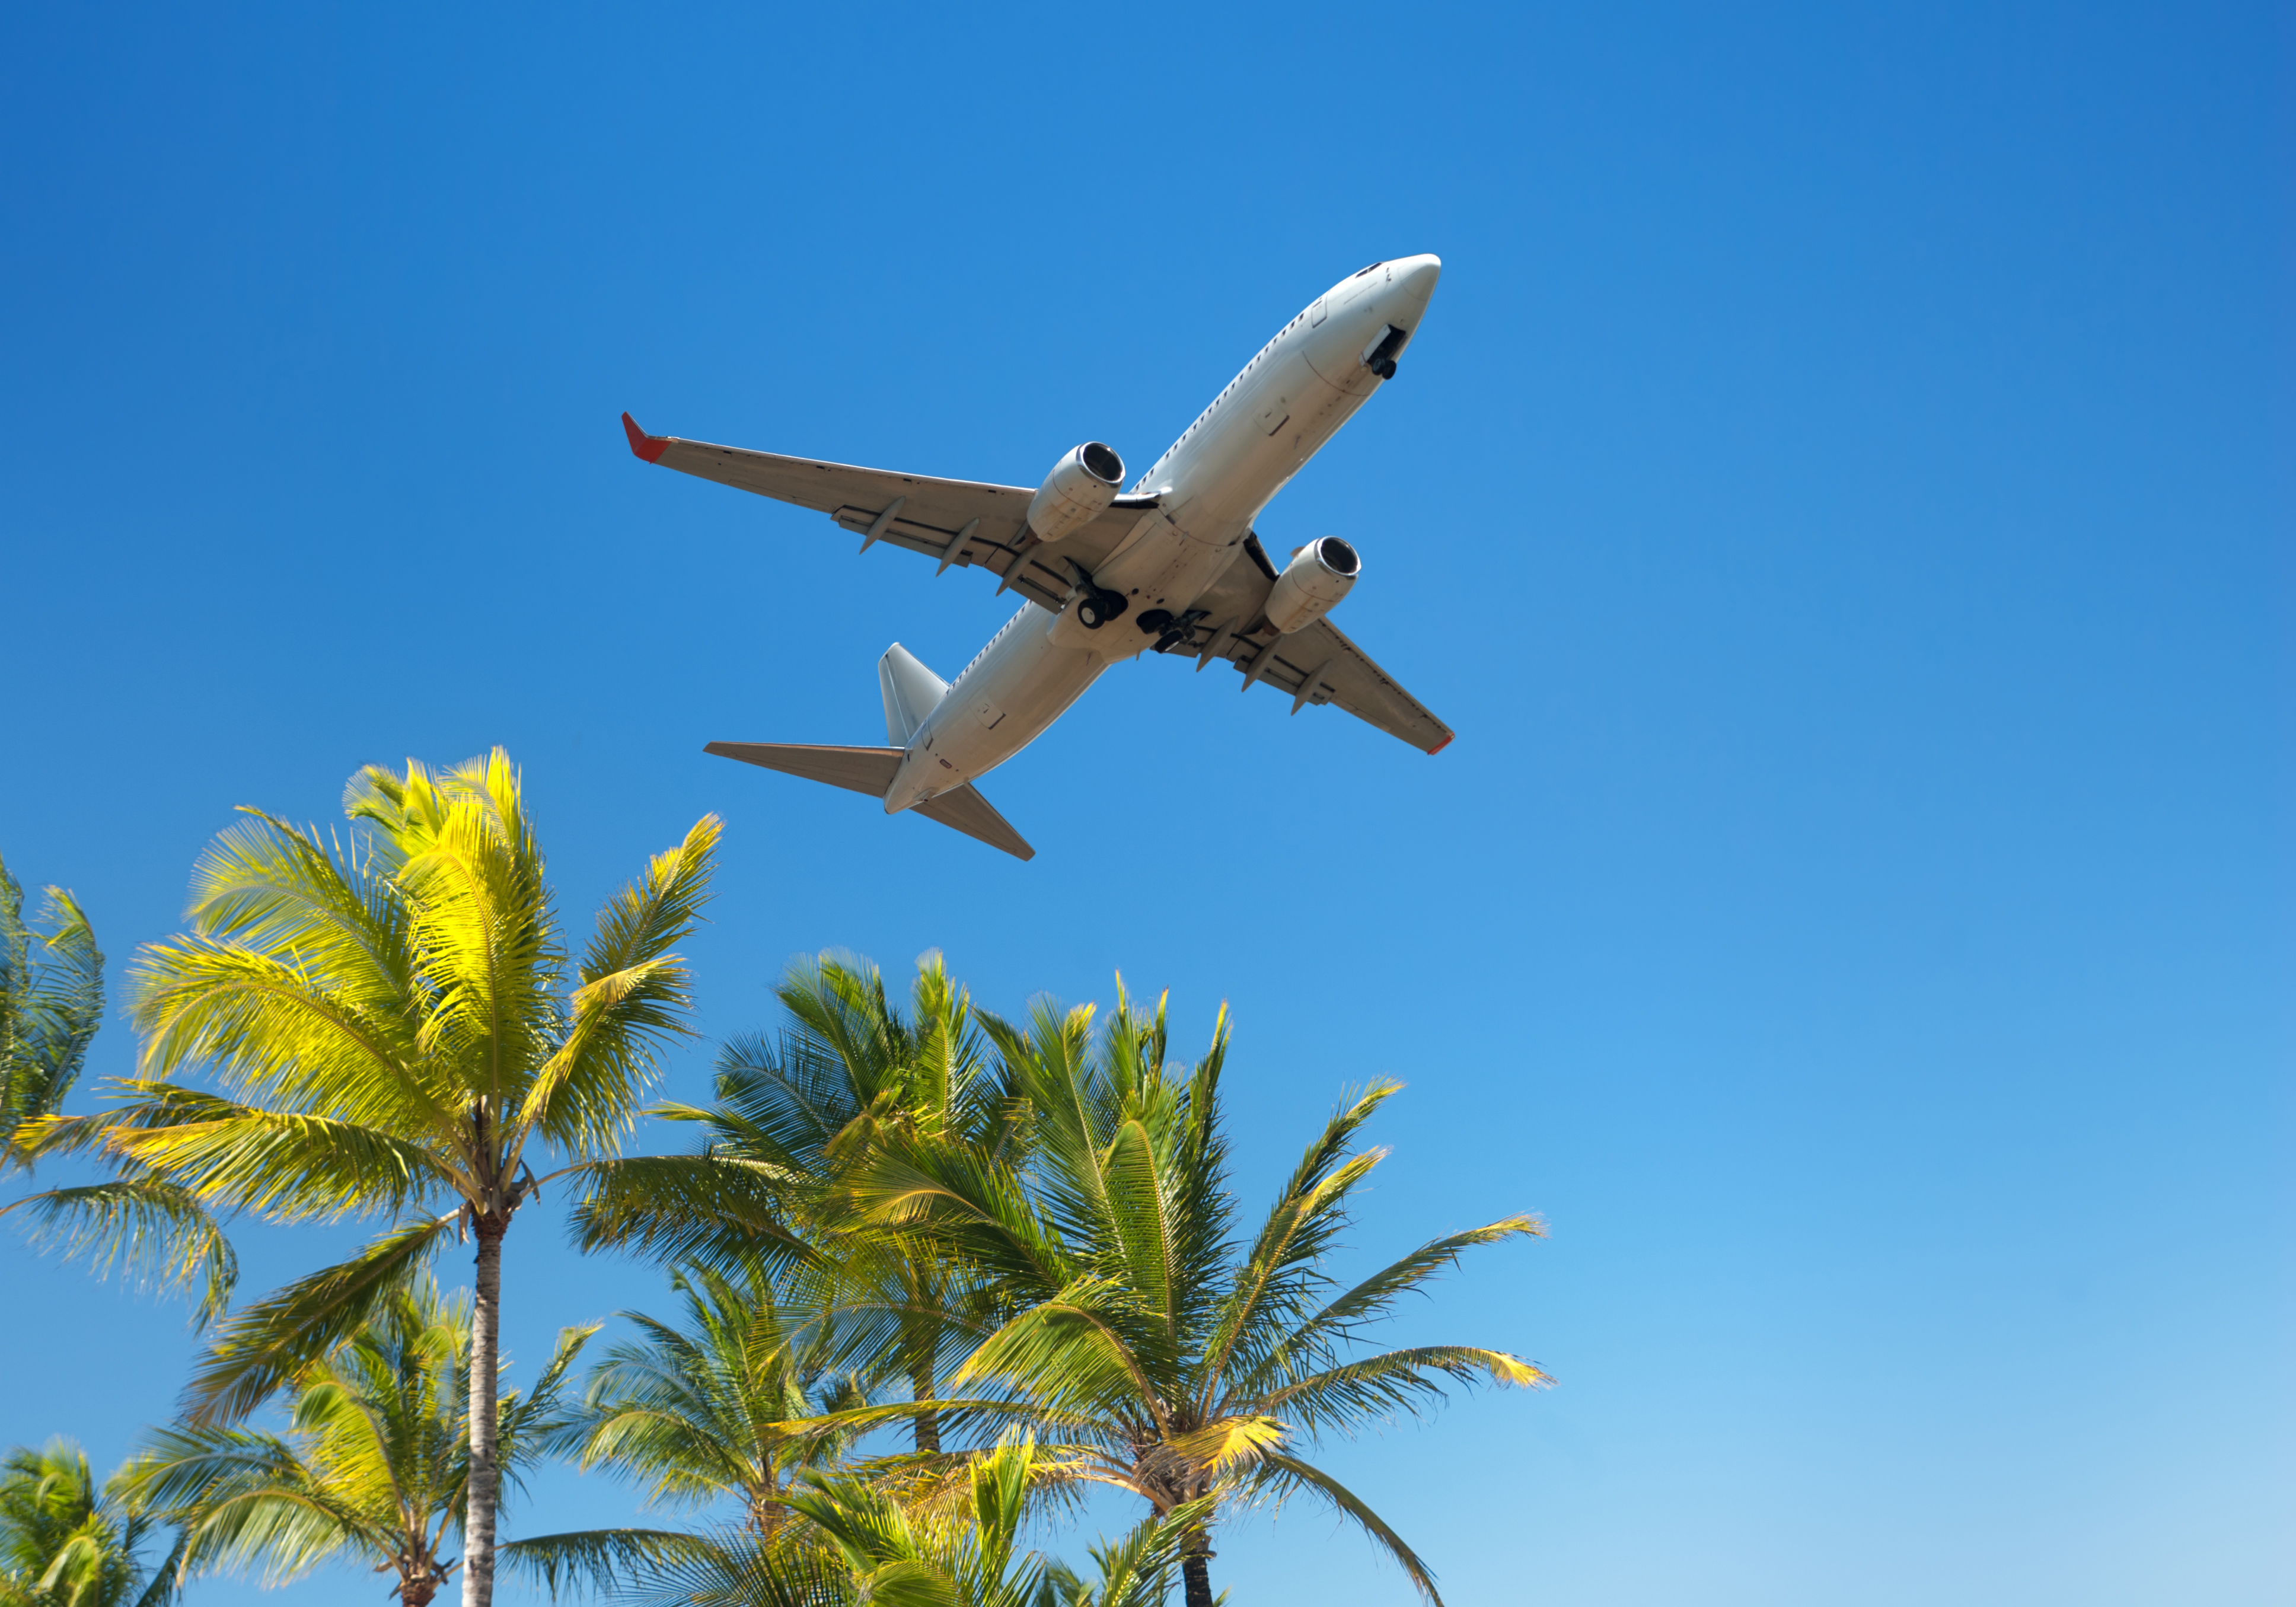 Plane flying over palm trees_11780